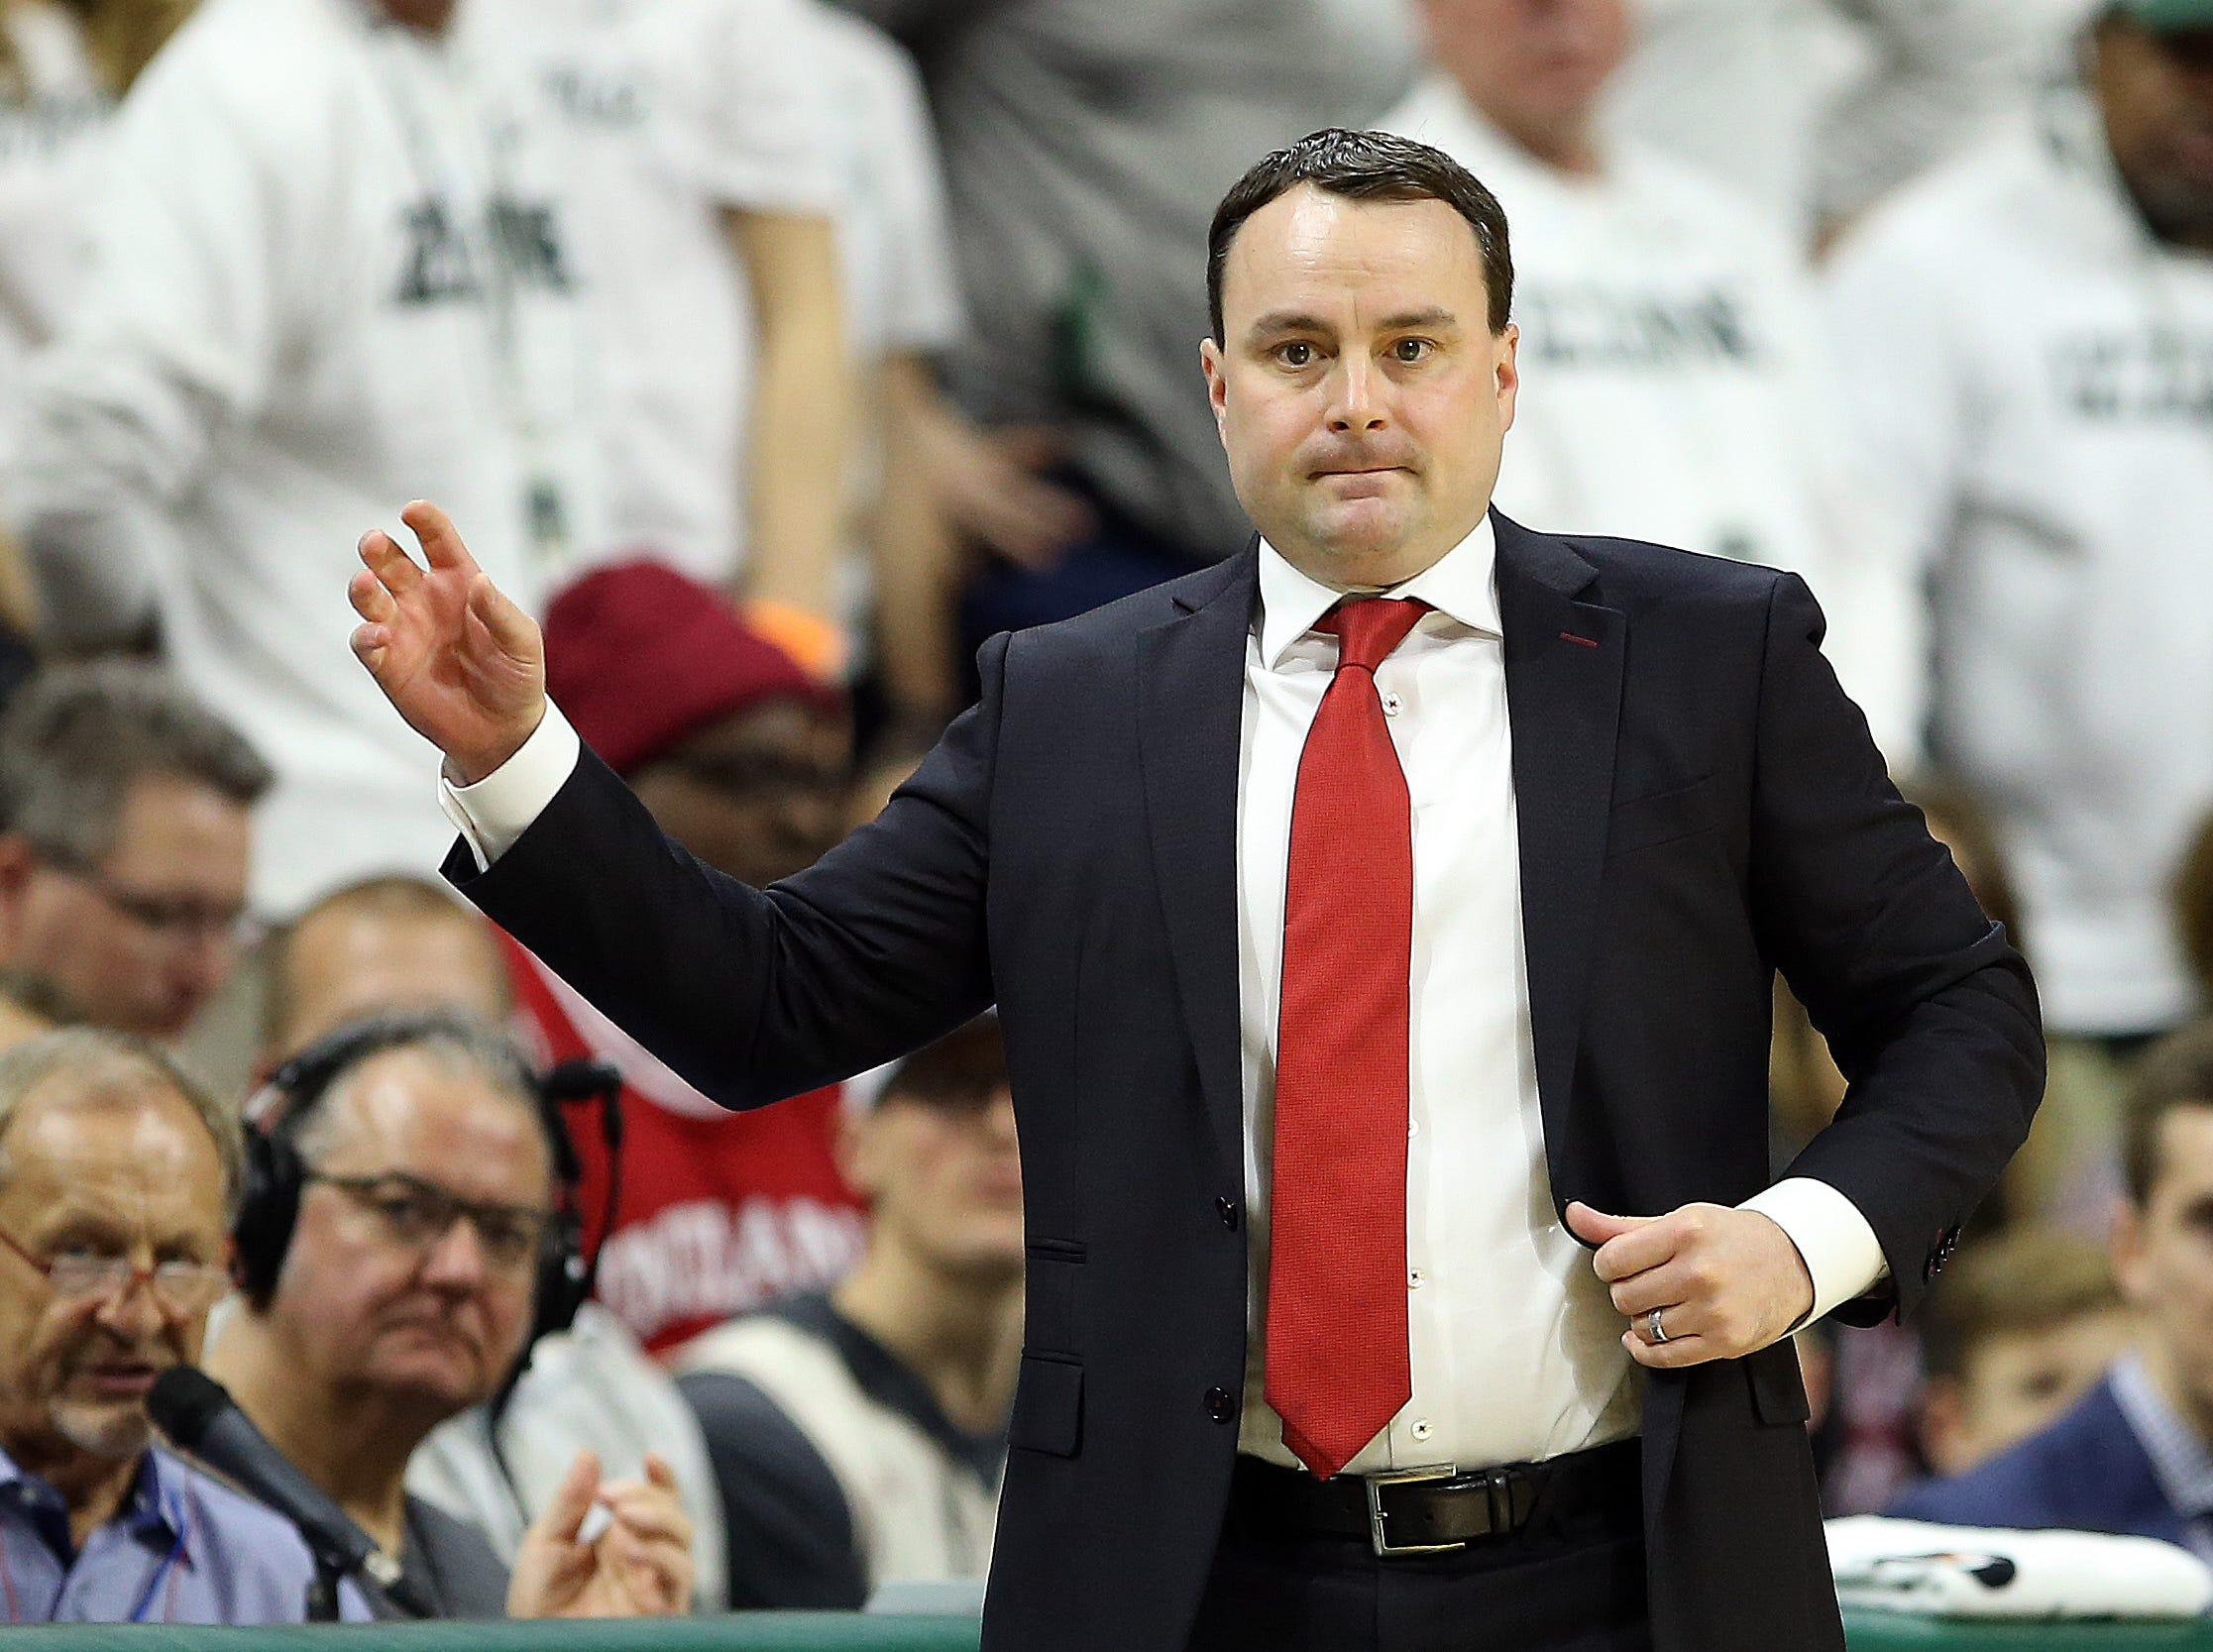 Feb 2, 2019; East Lansing, MI, USA; Indiana Hoosiers head coach Archie Miller reacts during the first half  against the Michigan State Spartans at the Breslin Center. Mandatory Credit: Mike Carter-USA TODAY Sports